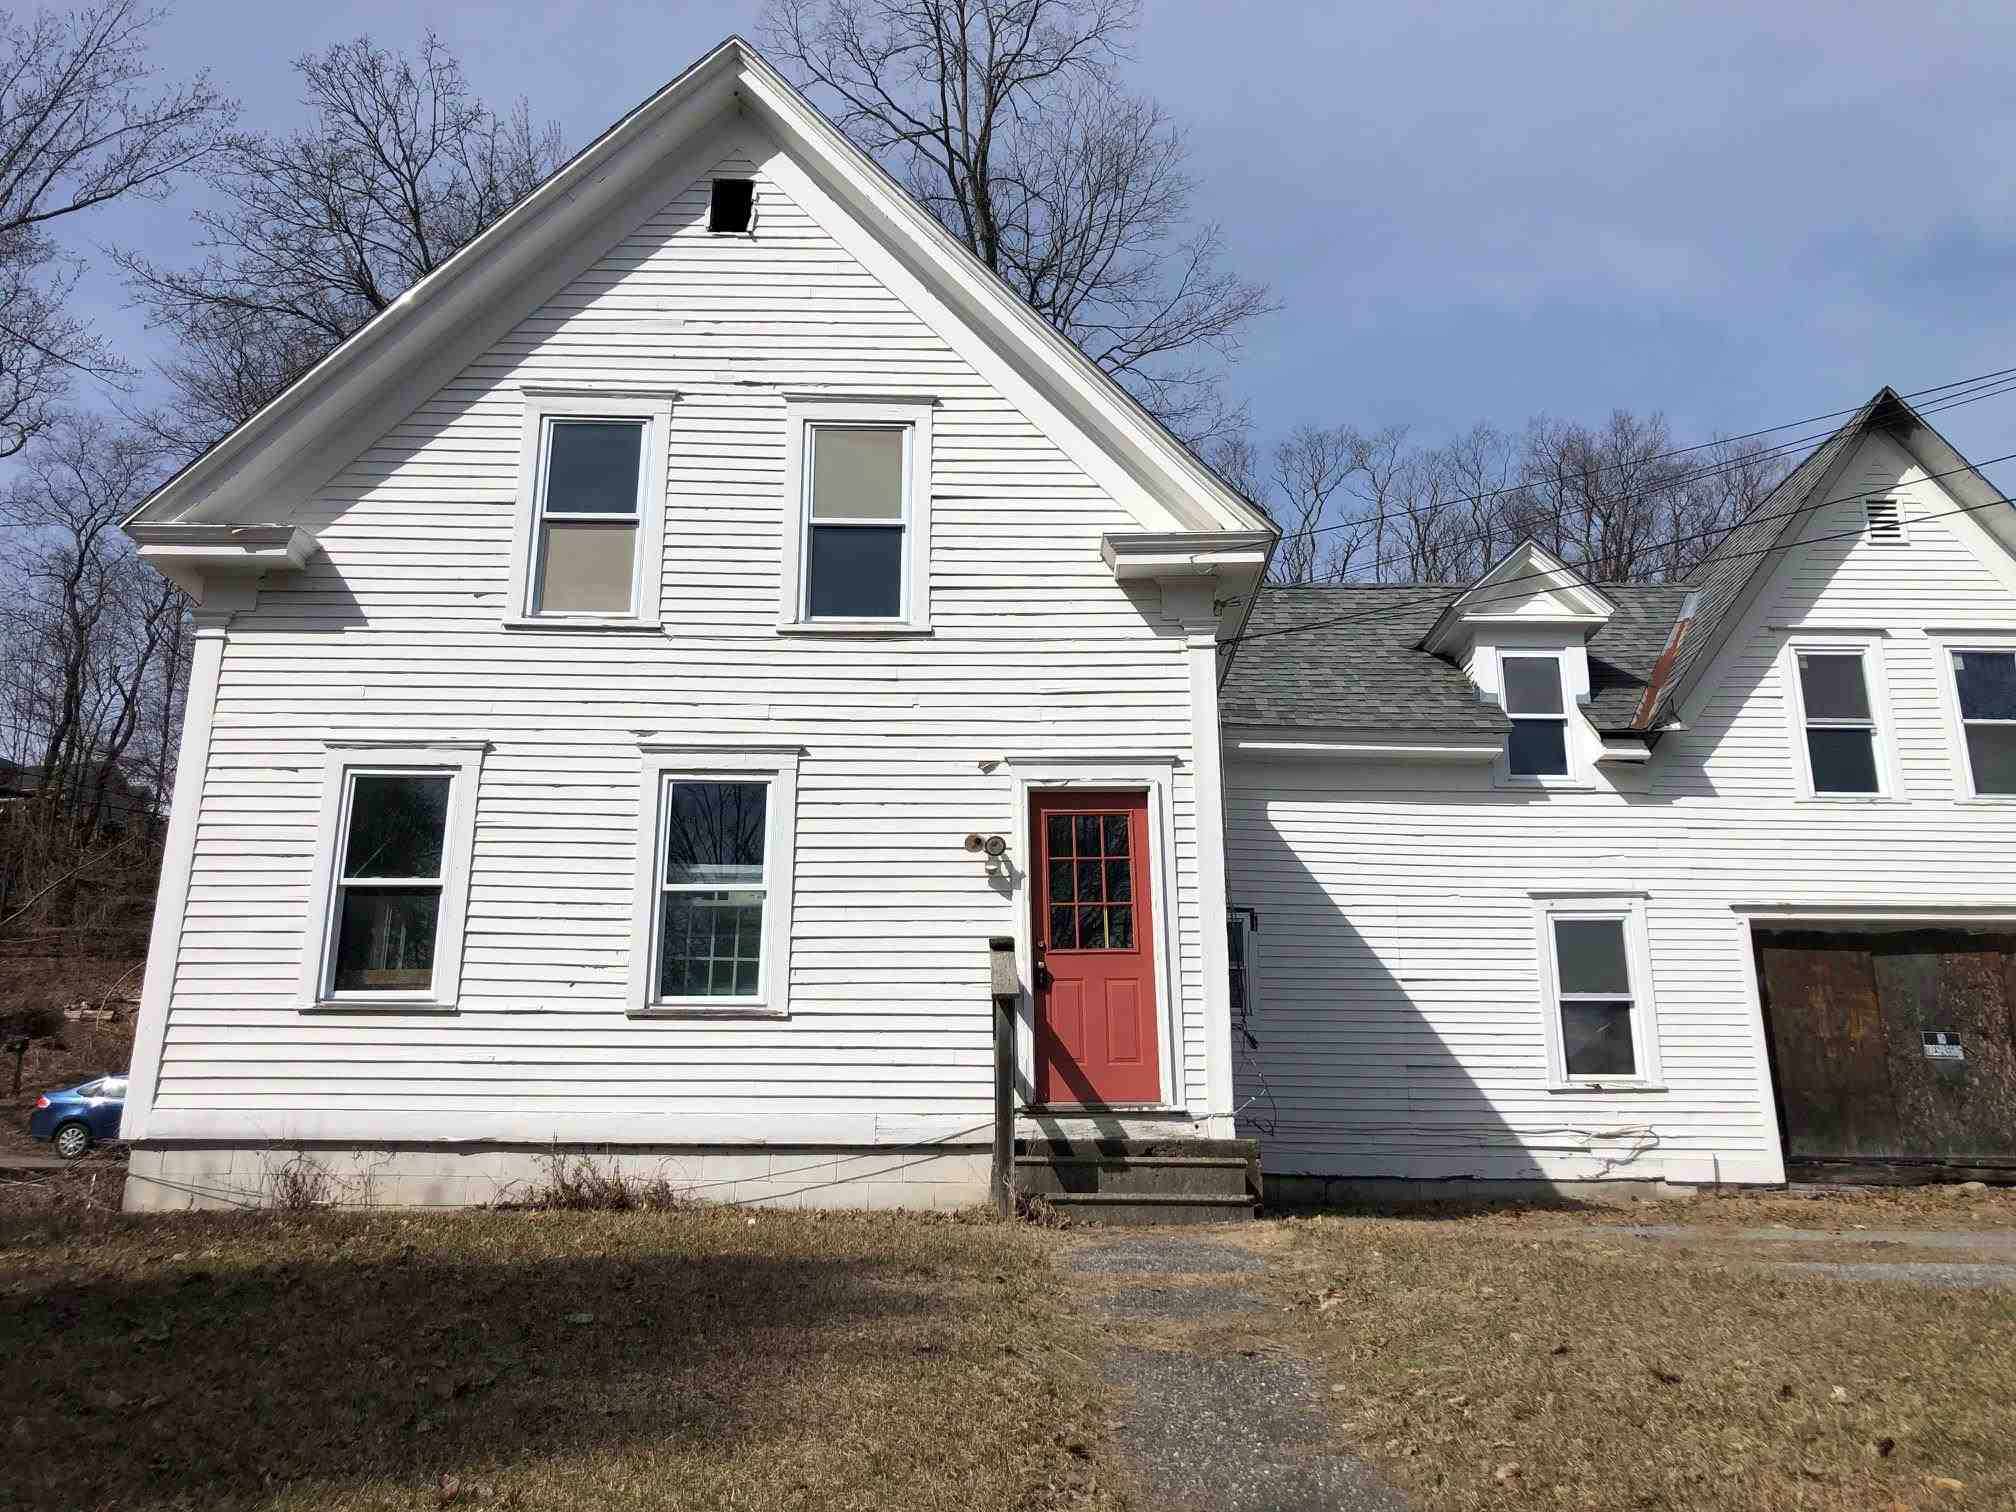 Photo of 86 High Street Hinsdale NH 03451